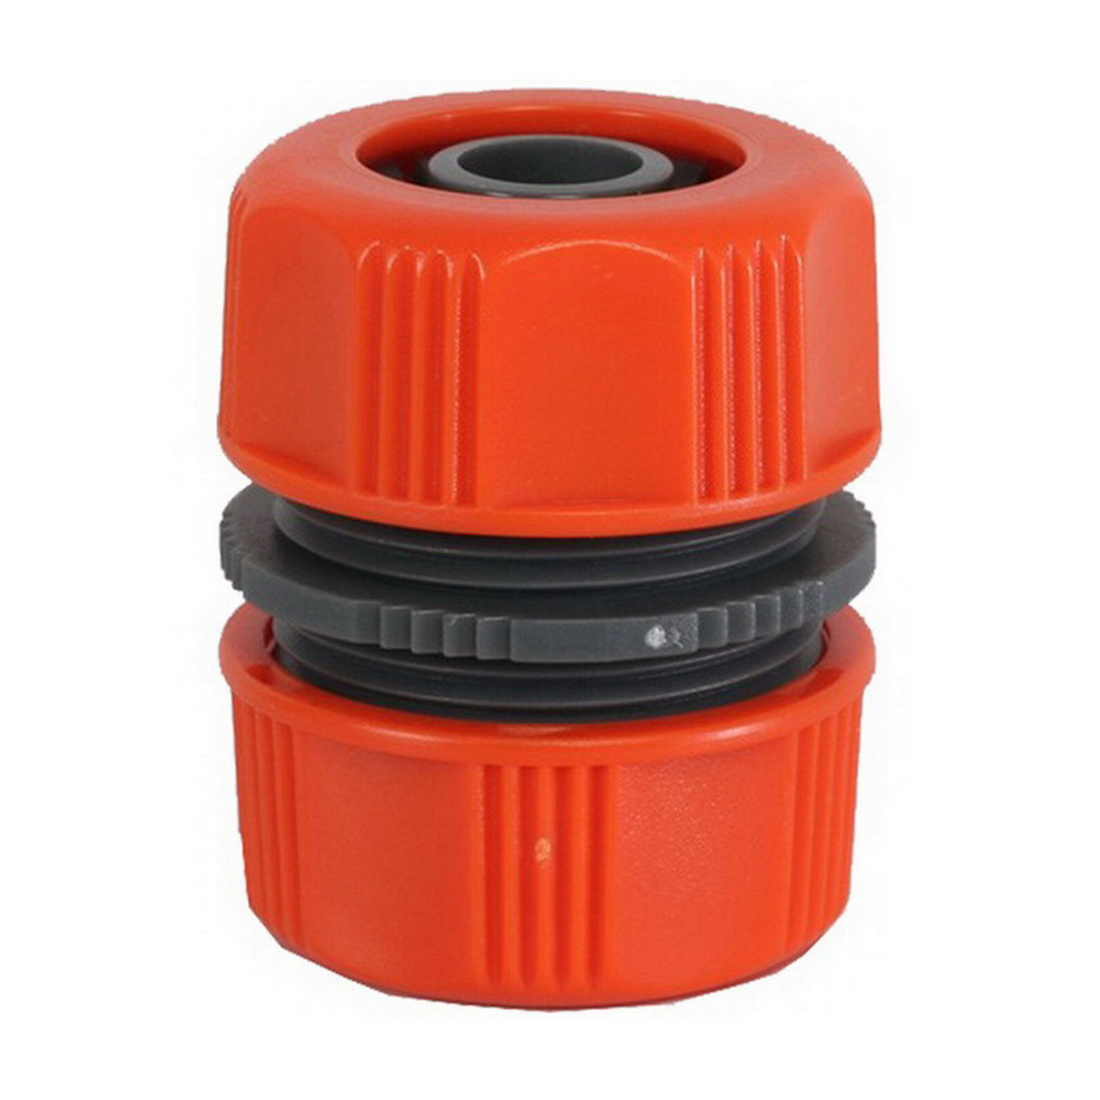 Plastic Hose Joiner/Repairer 18mm Connection